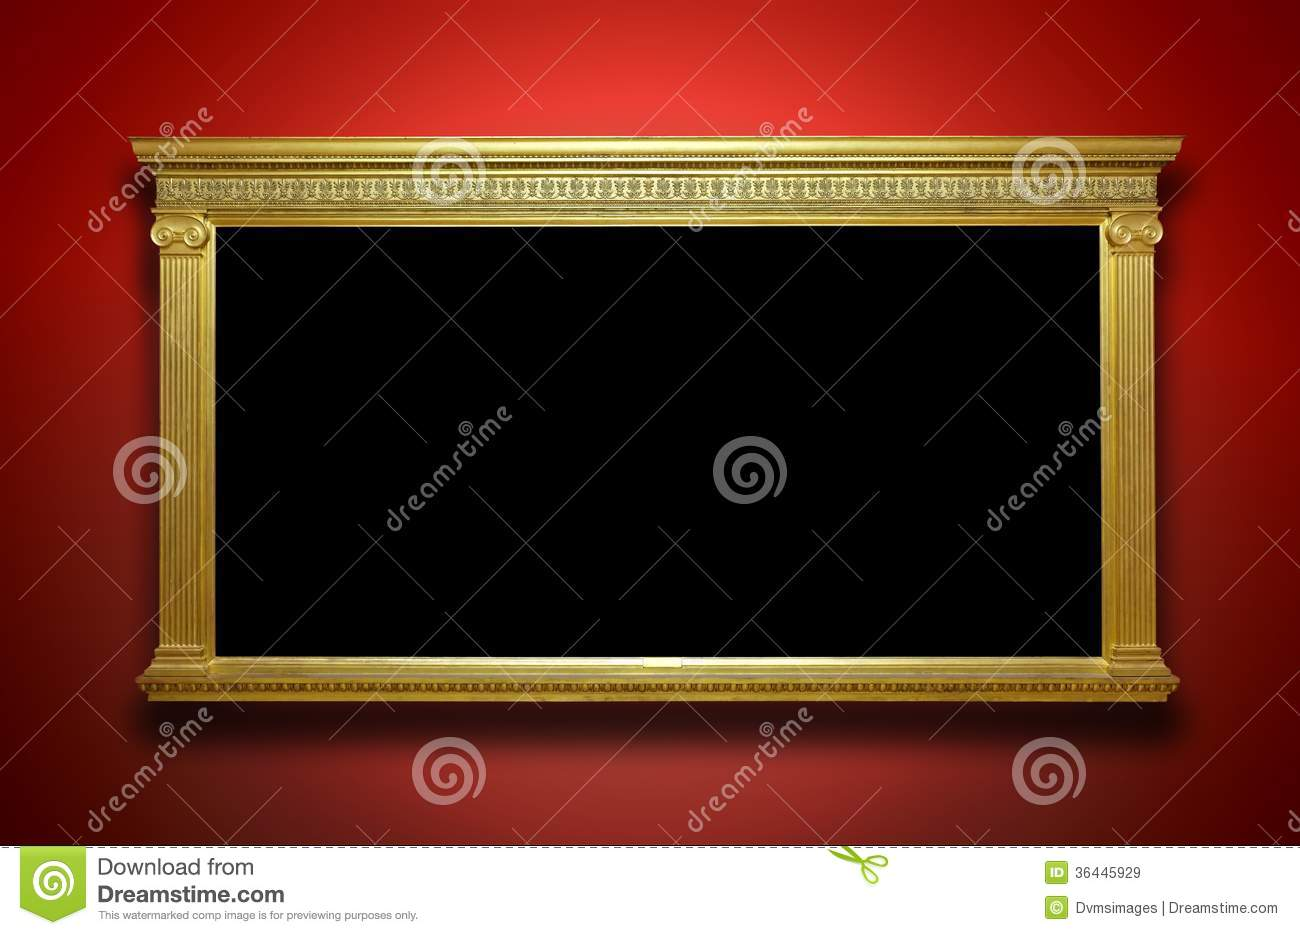 Gold Frame on Gallery Wall